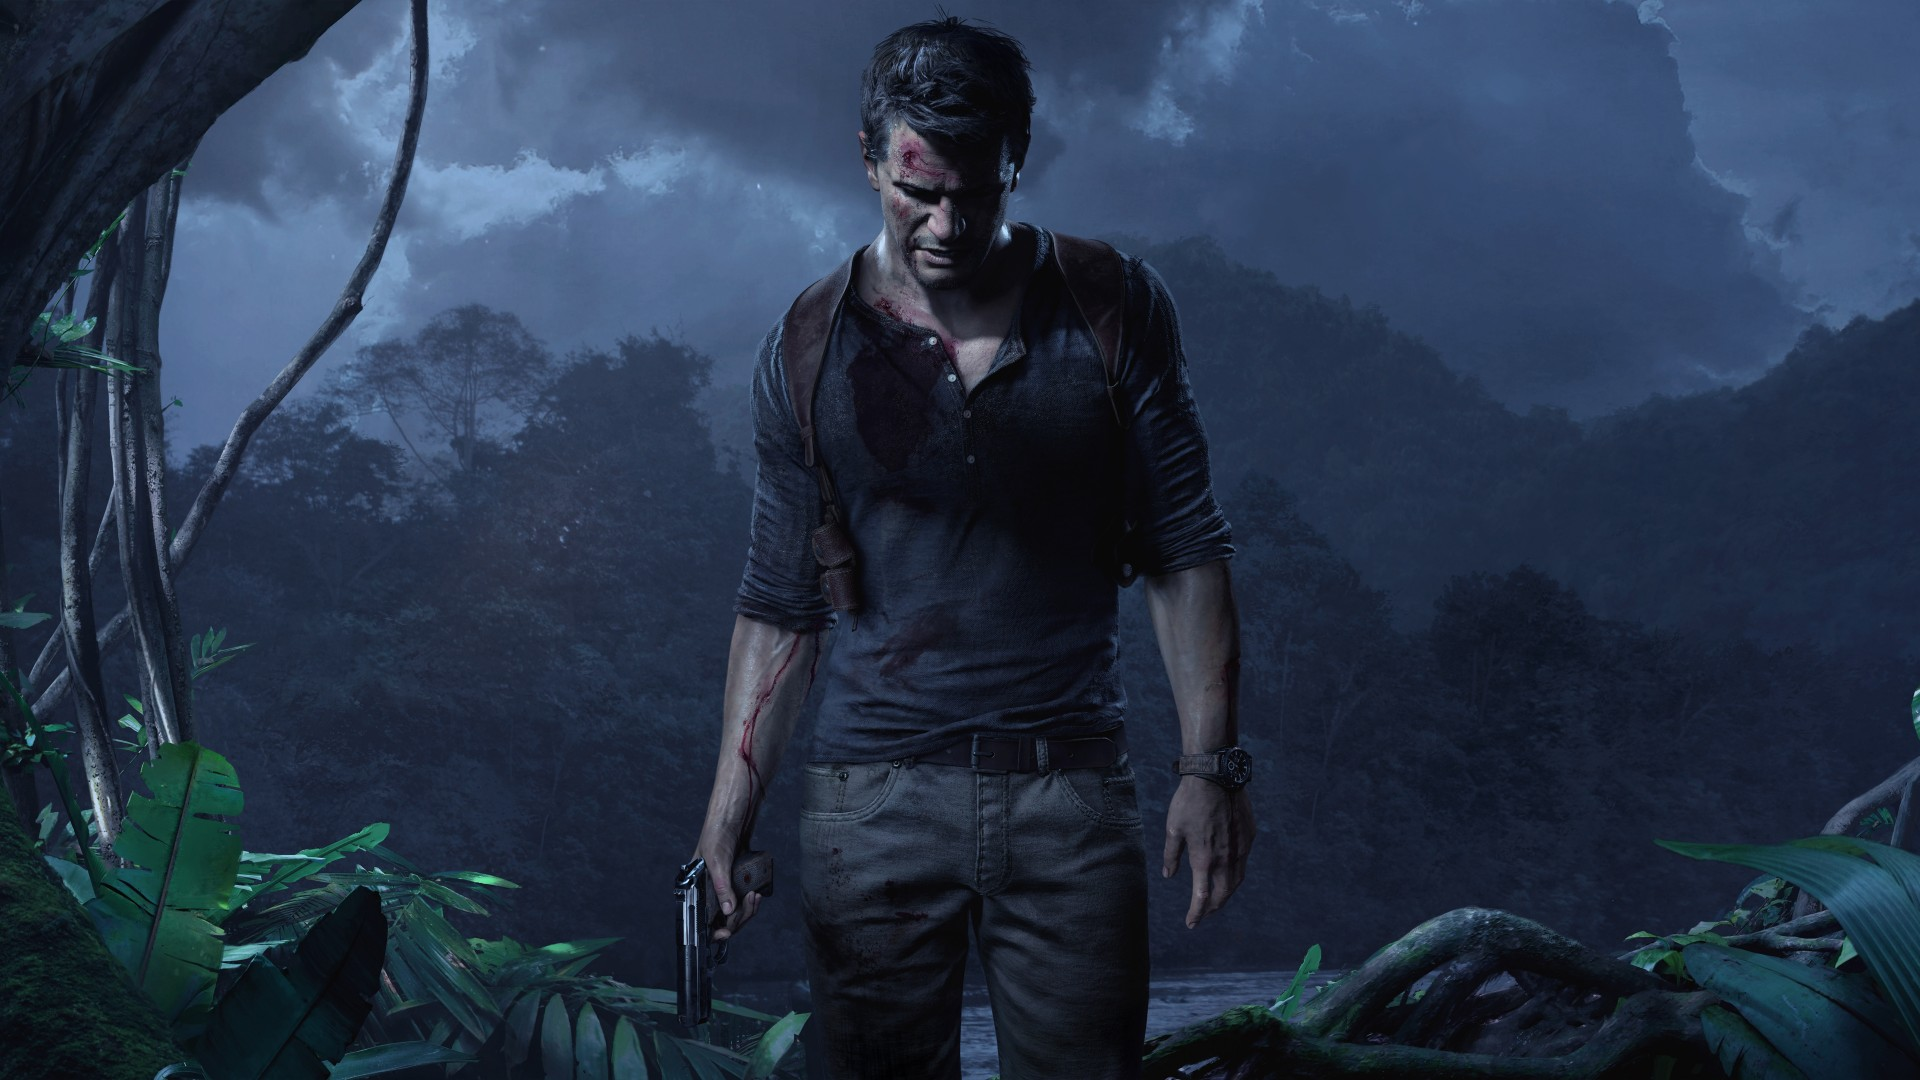 Анчартед, Е4, лучшие игры 2015, Uncharted 4 A Thief's End, Best Games of 2015, E3 2015, gameplay, review, screenshot, PS4, Nathan Drake